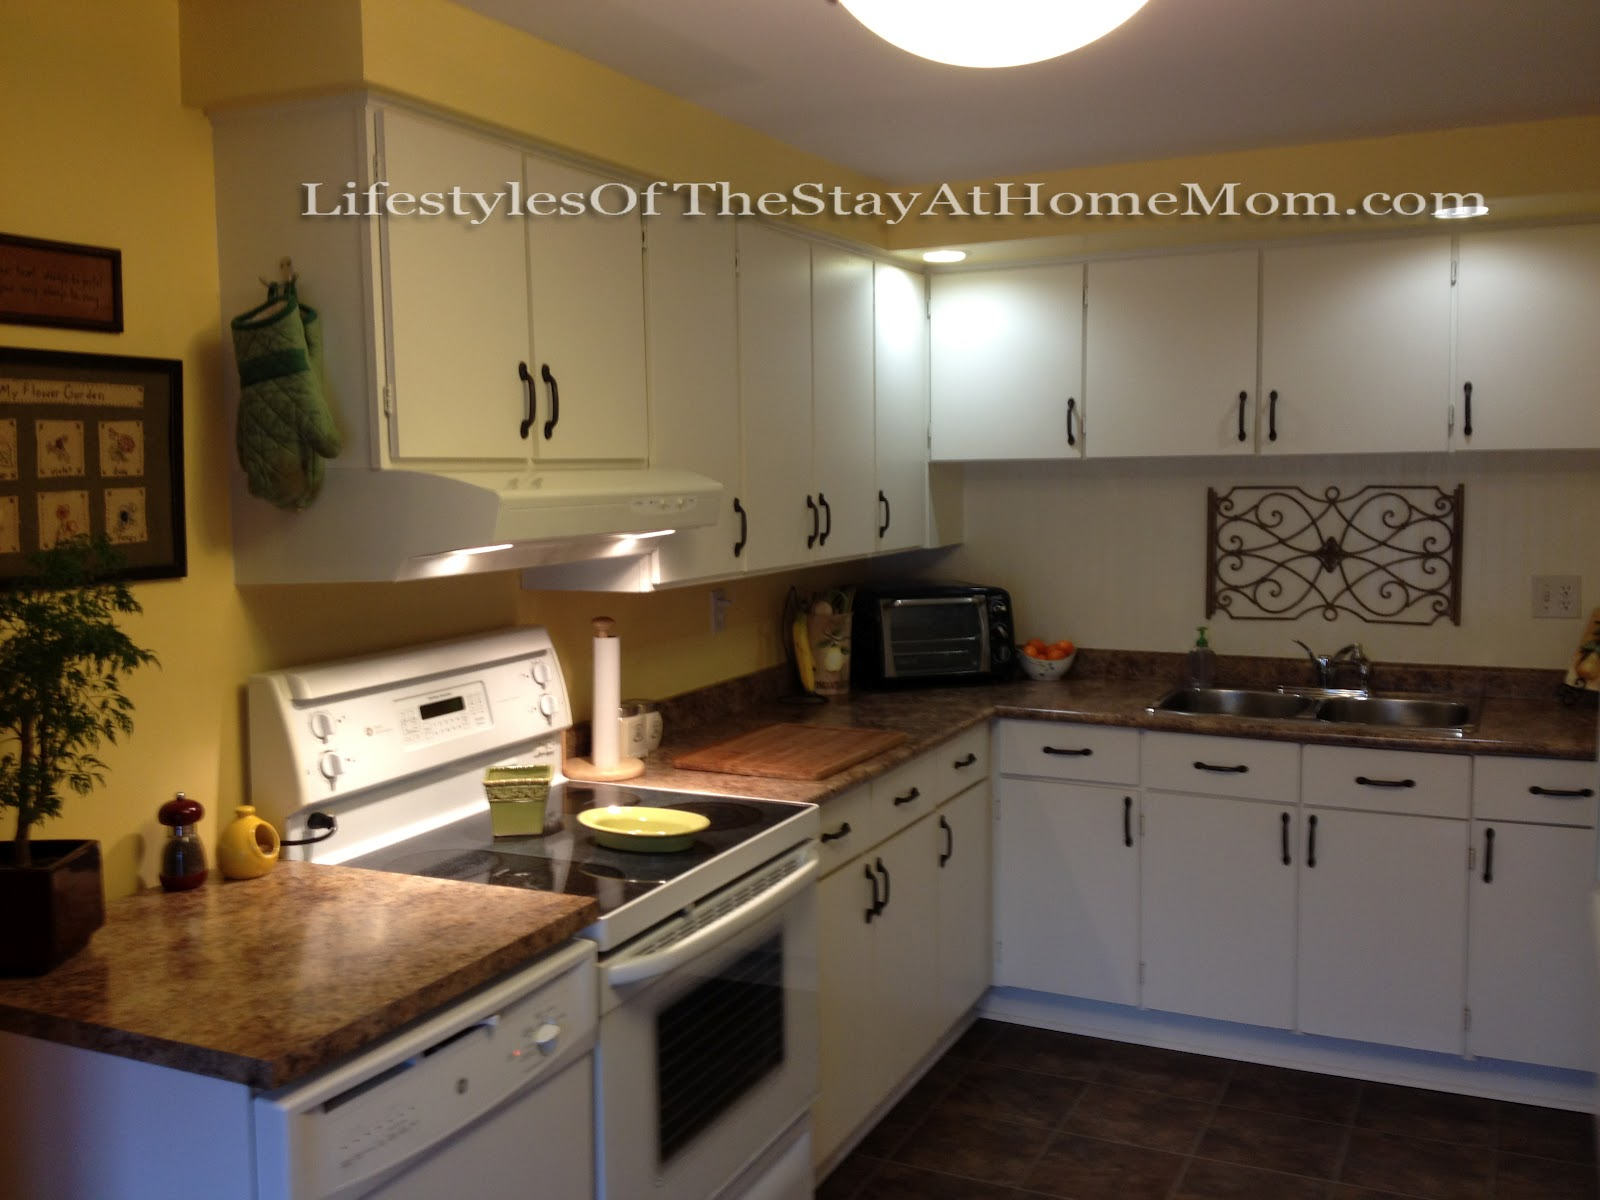 Lifestyles Of The Stay-at-Home Mom: Making This House A Home